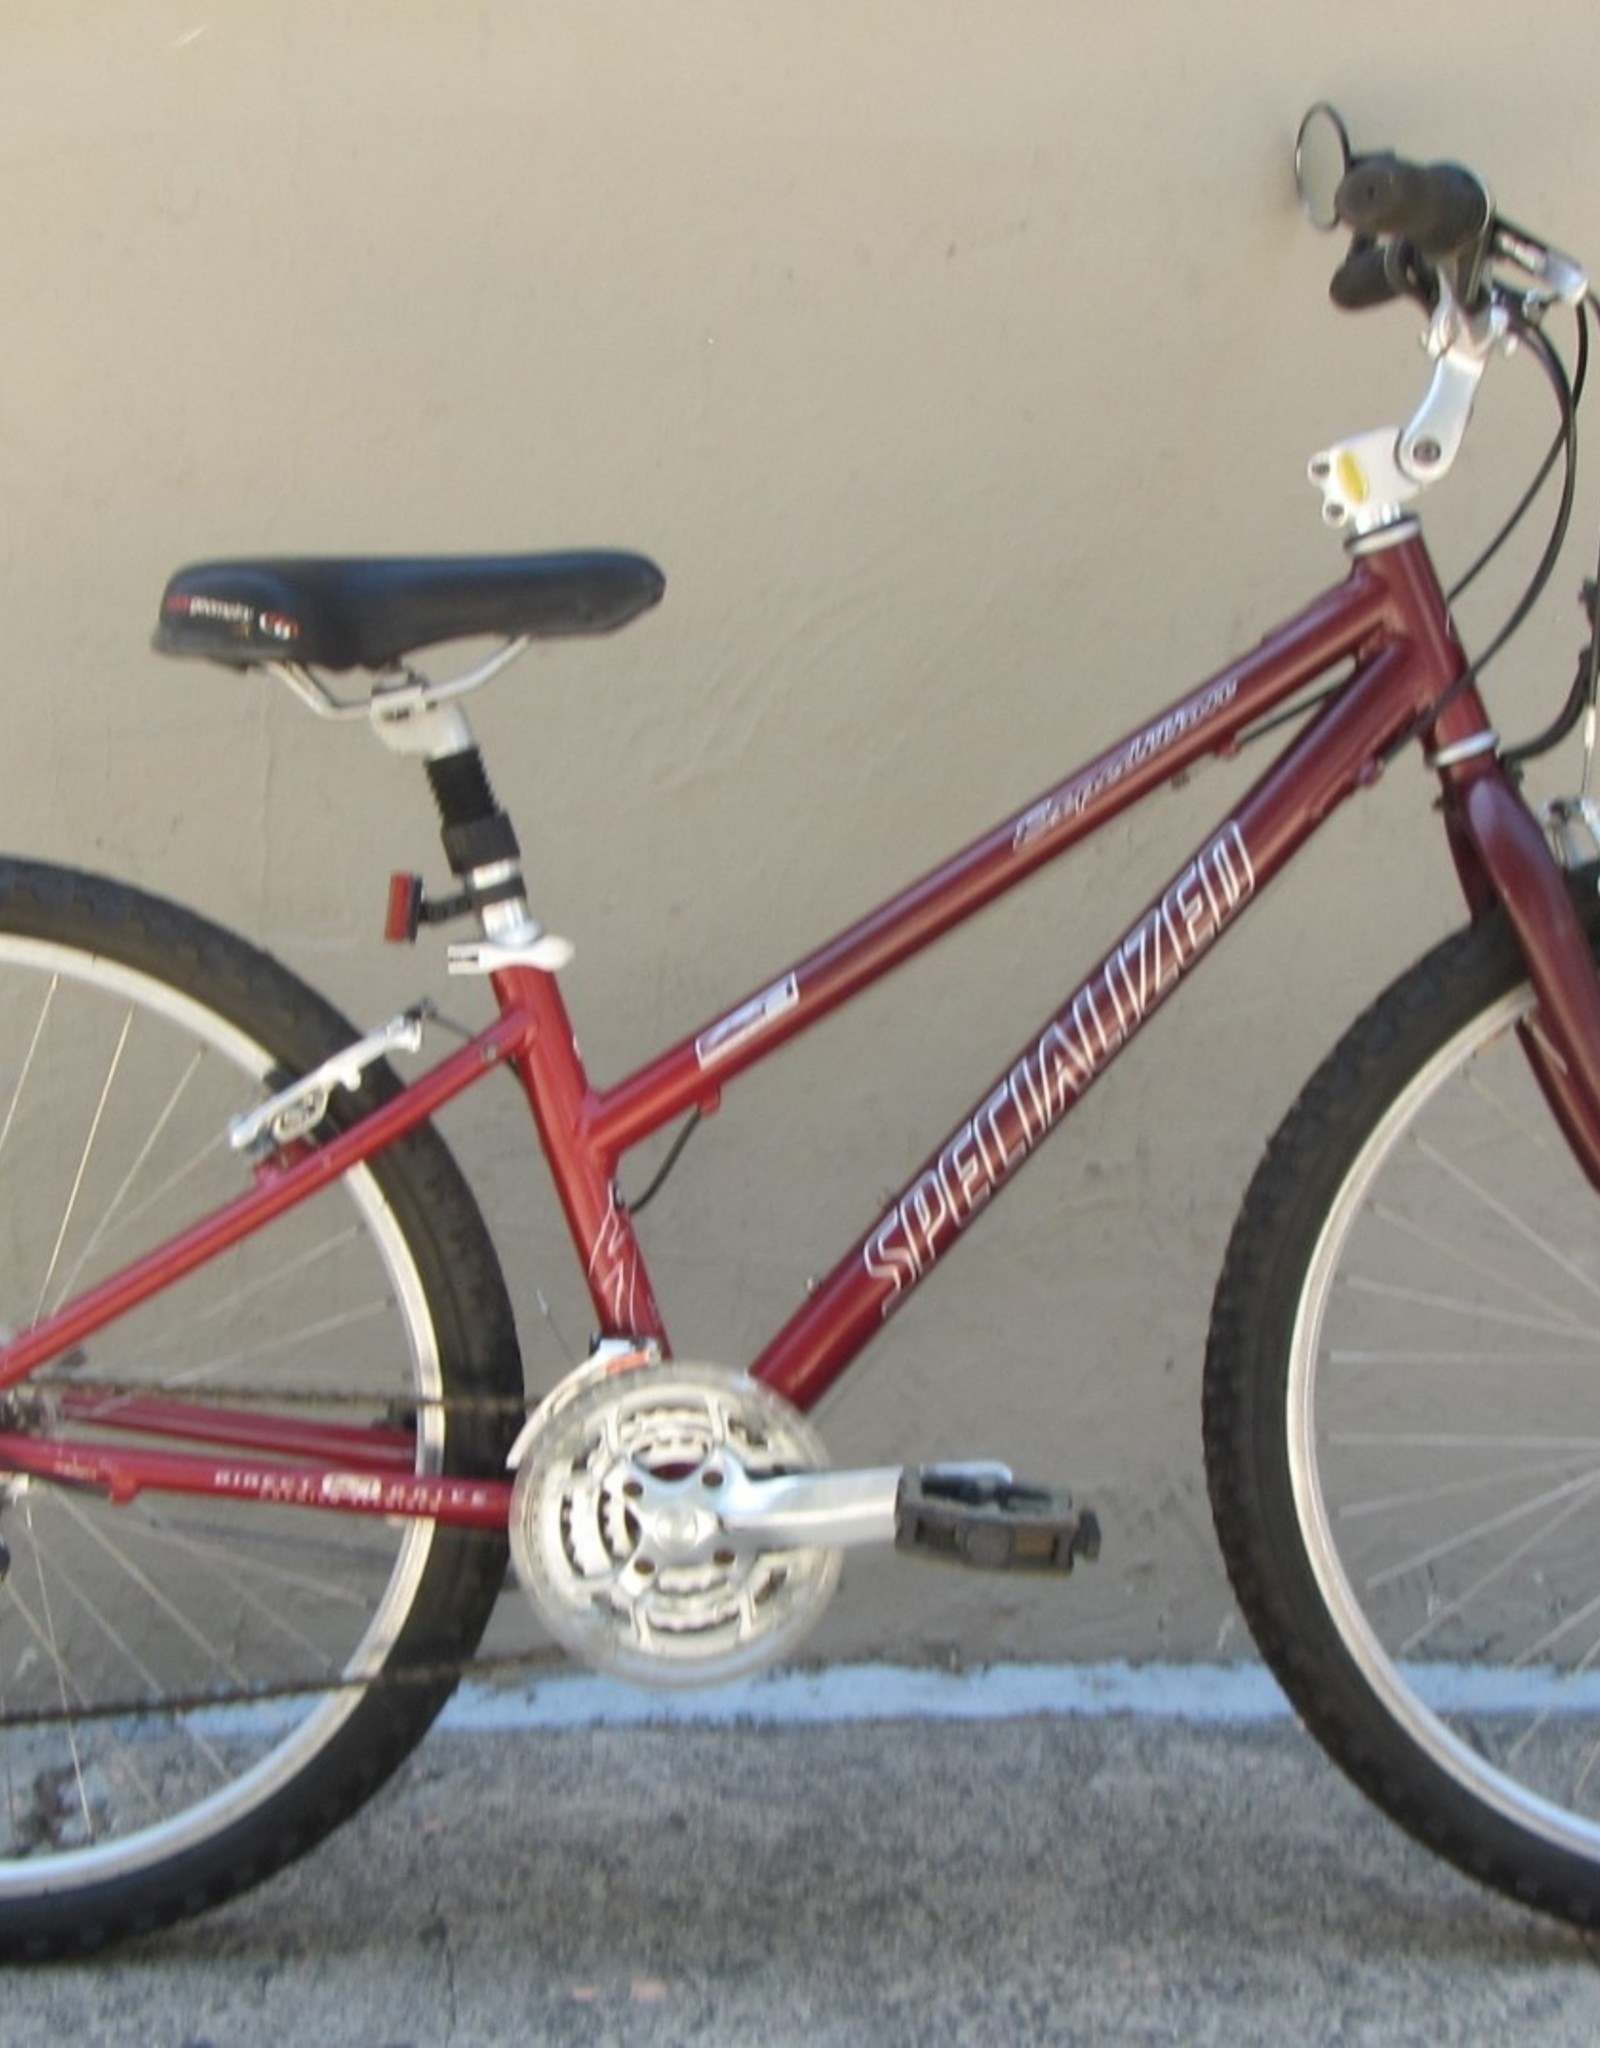 Specialized Specialized Expedition Hybrid, 13.5 Inches, Red, 2001